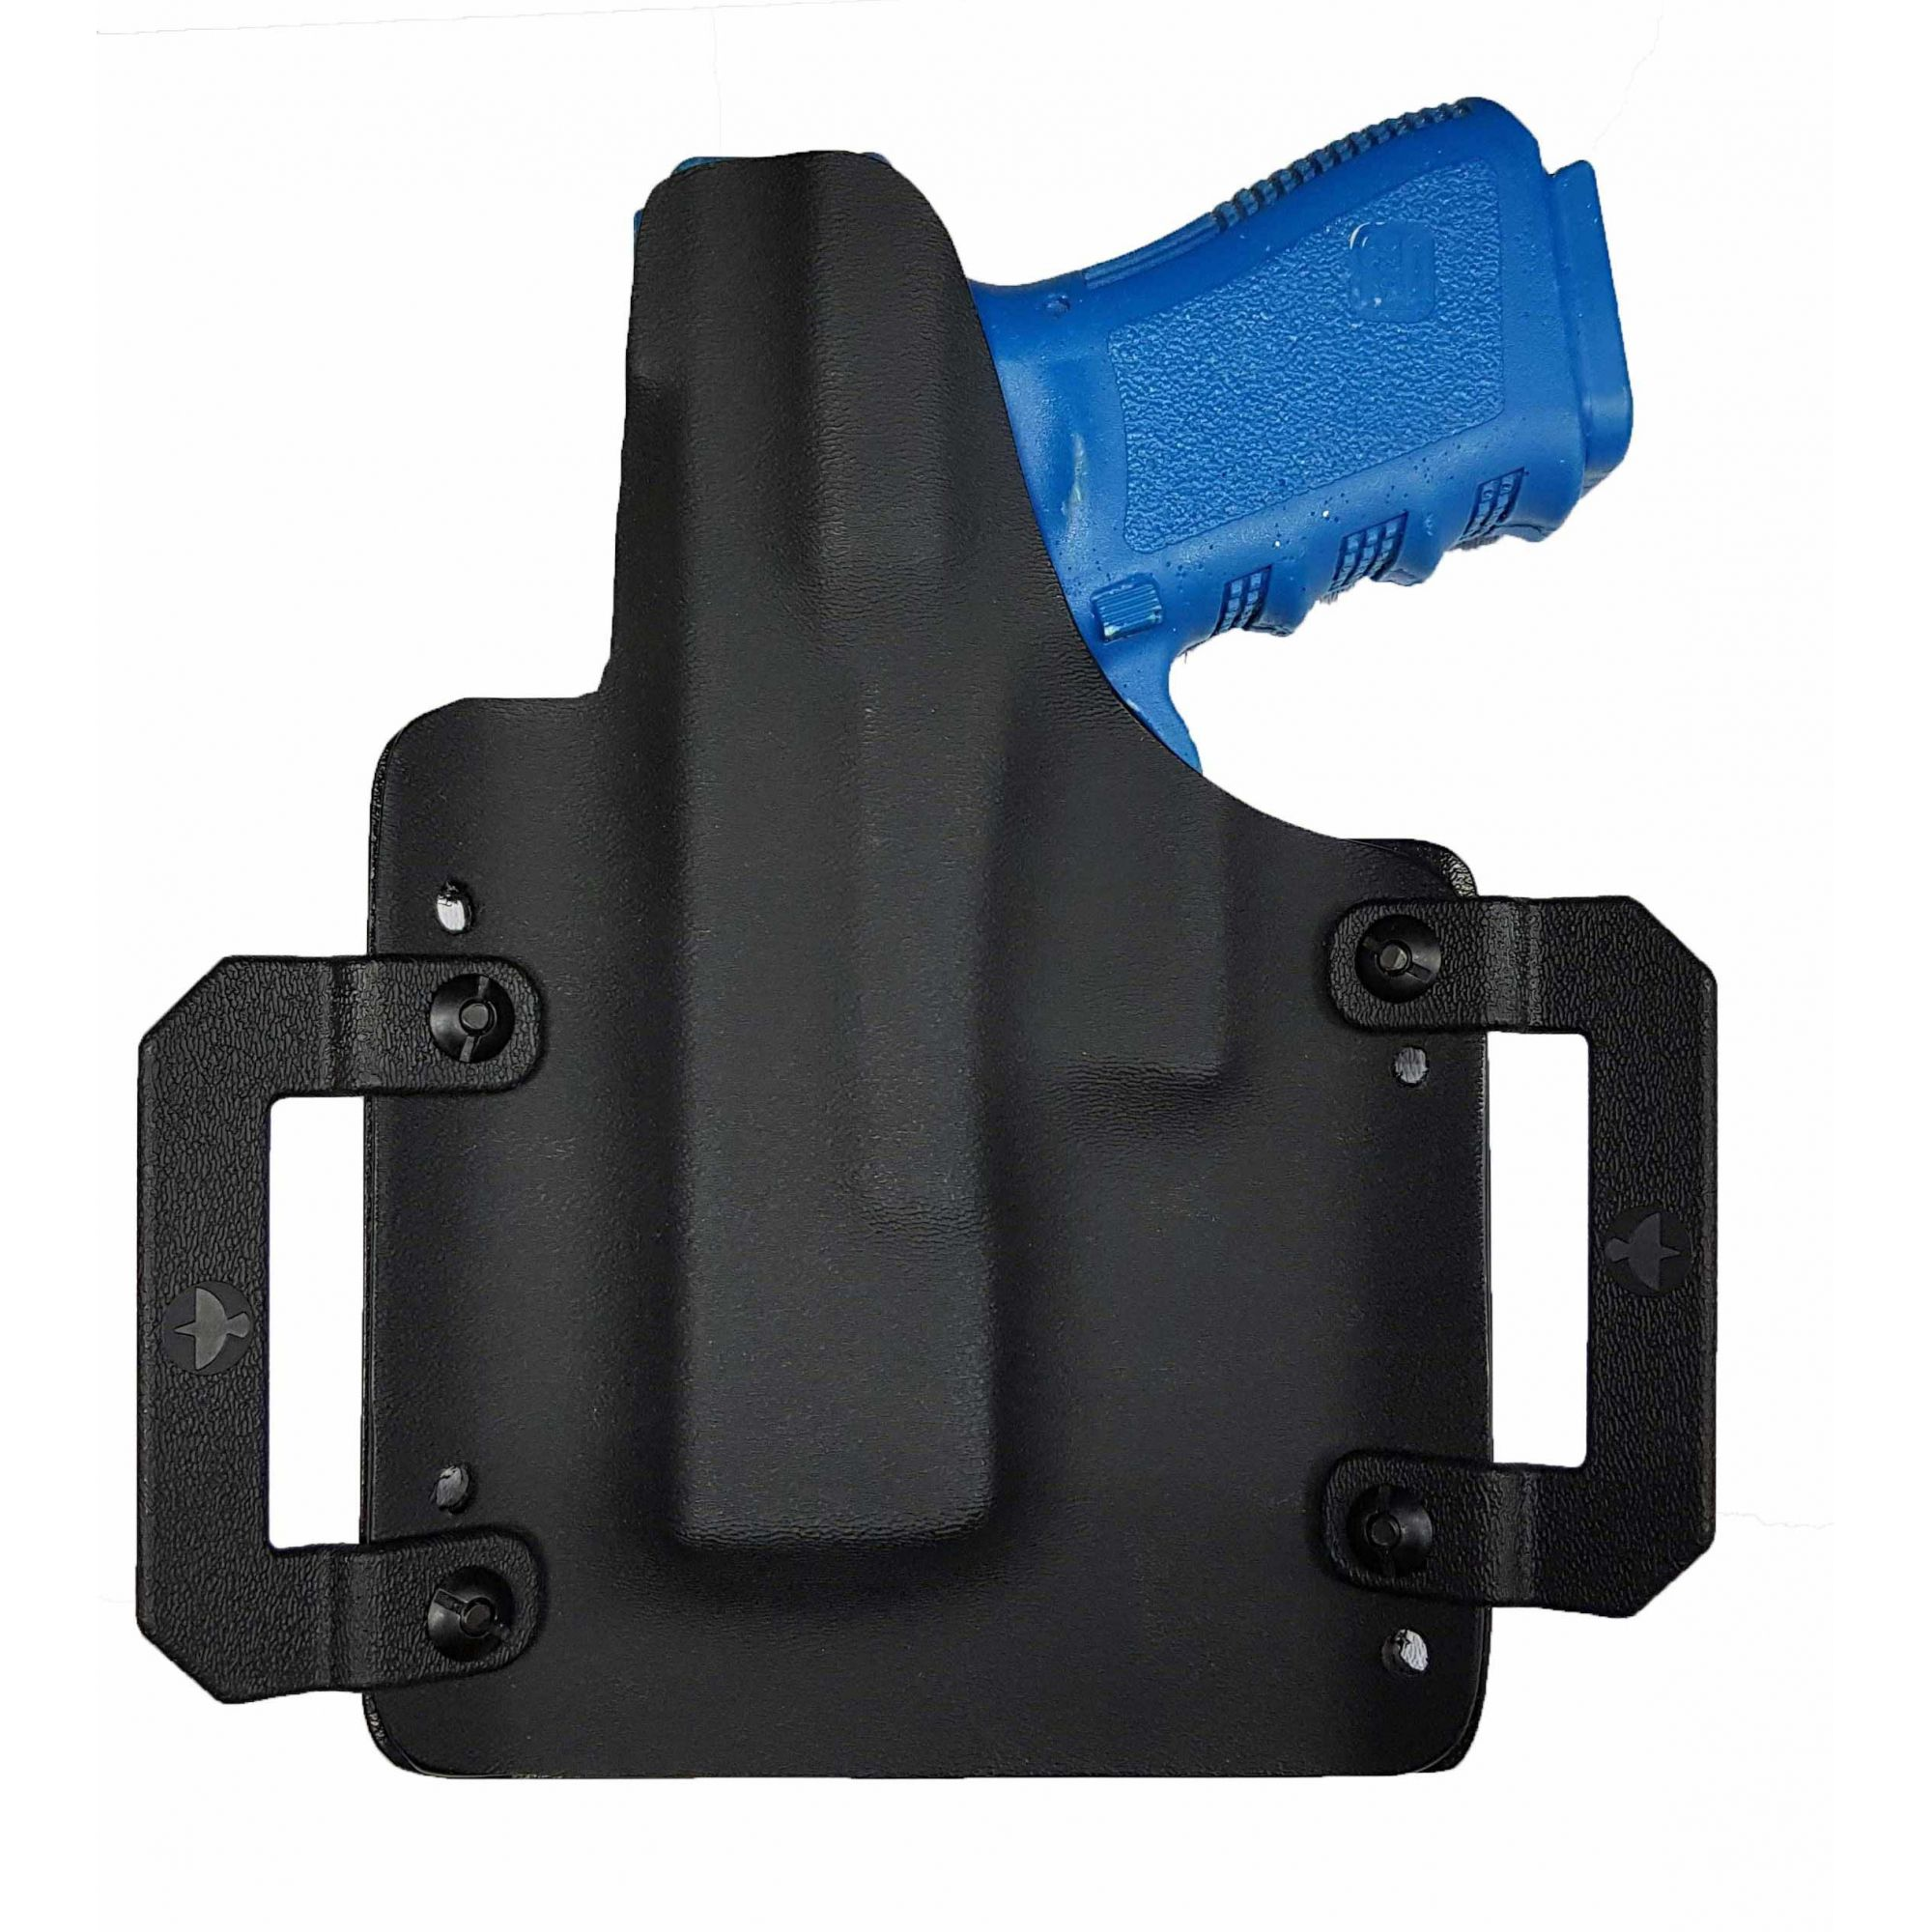 Coldre Kydex Externo Sig Sauer P320 Full